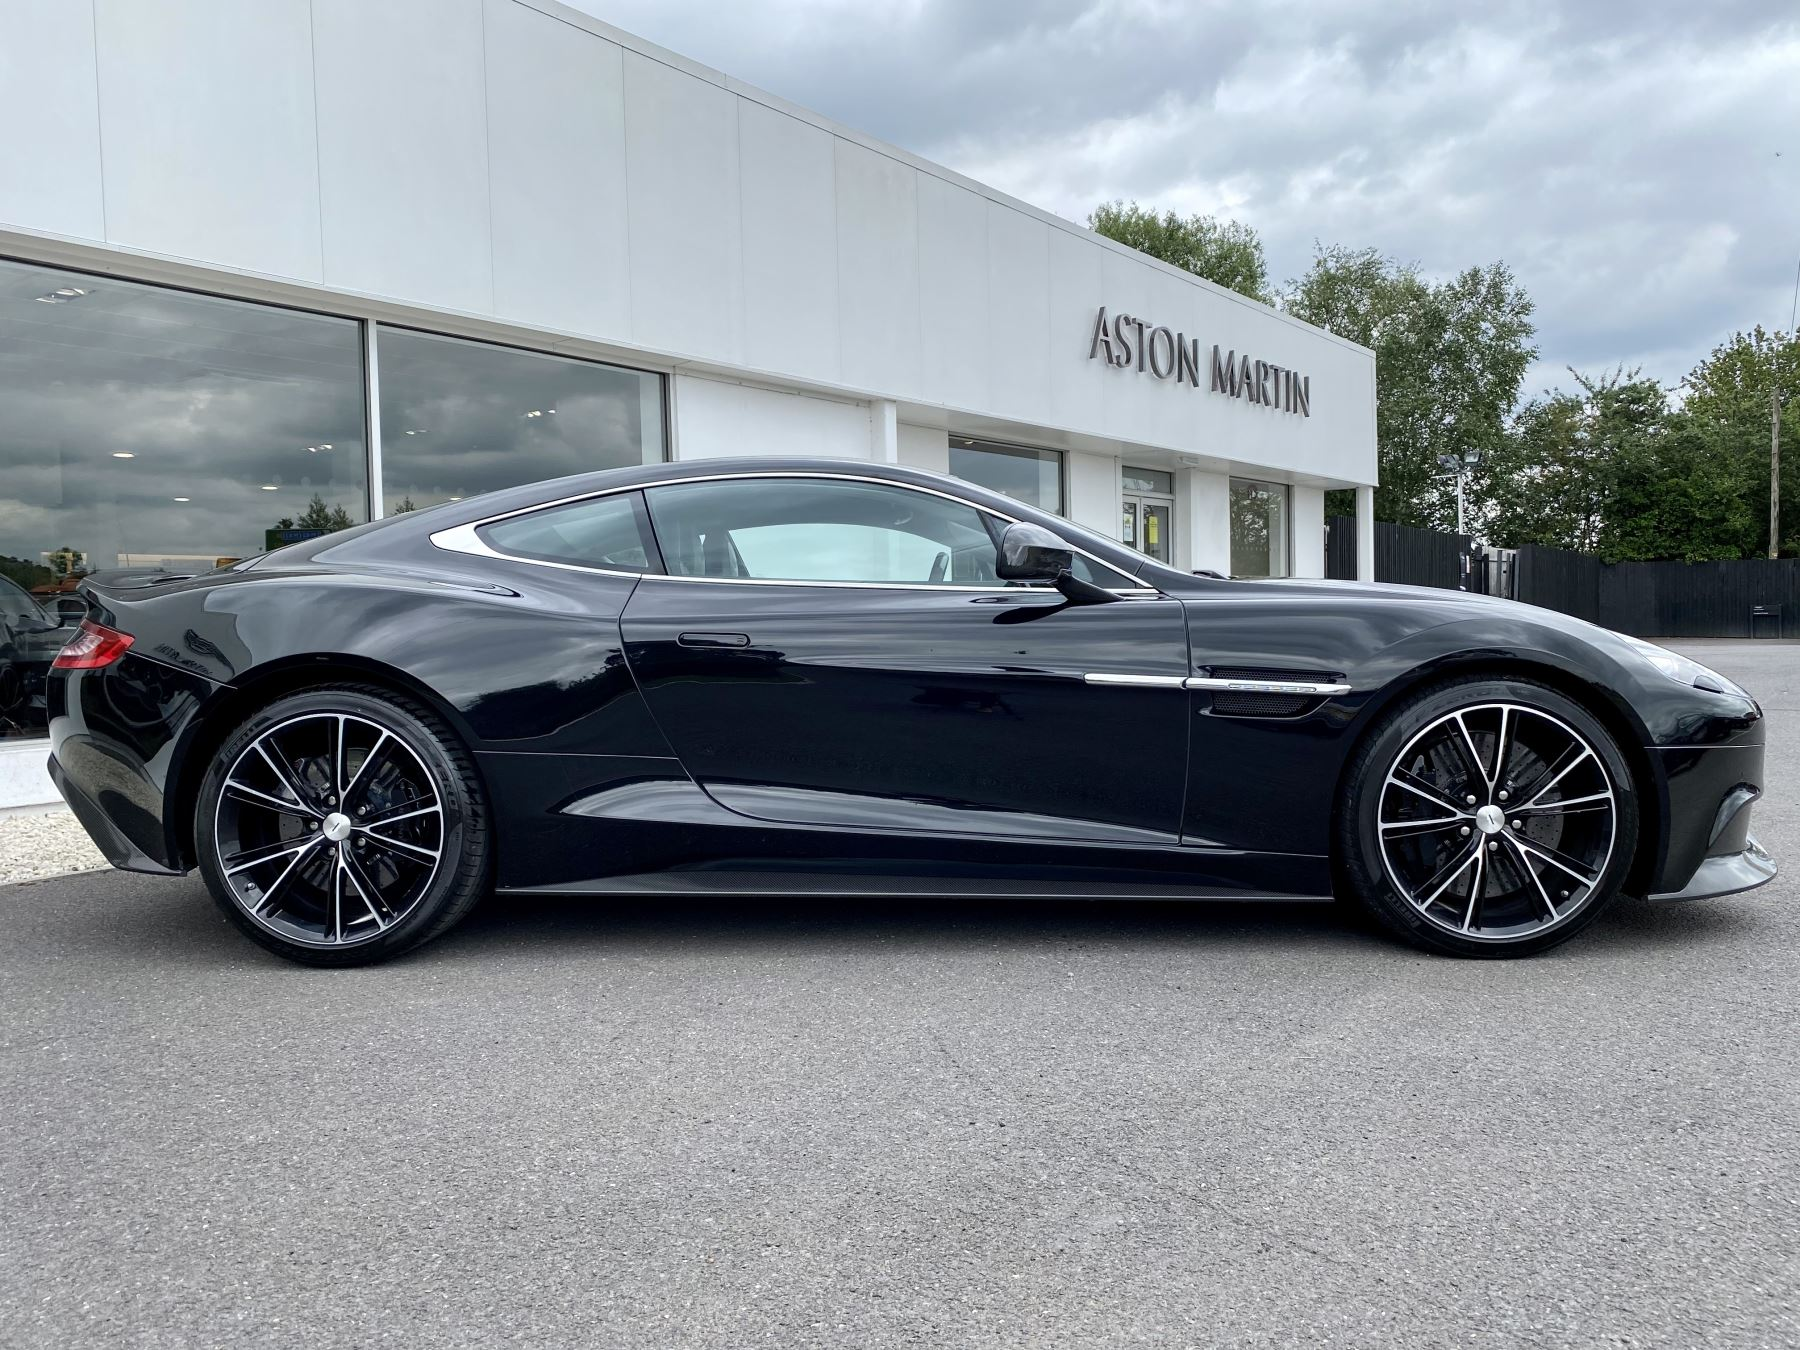 Aston Martin Vanquish V12 [568] 2+2 2dr Touchtronic 3 8 Speed, 2 Owners From New, Onyx Black, Bang And Olufsen. image 8